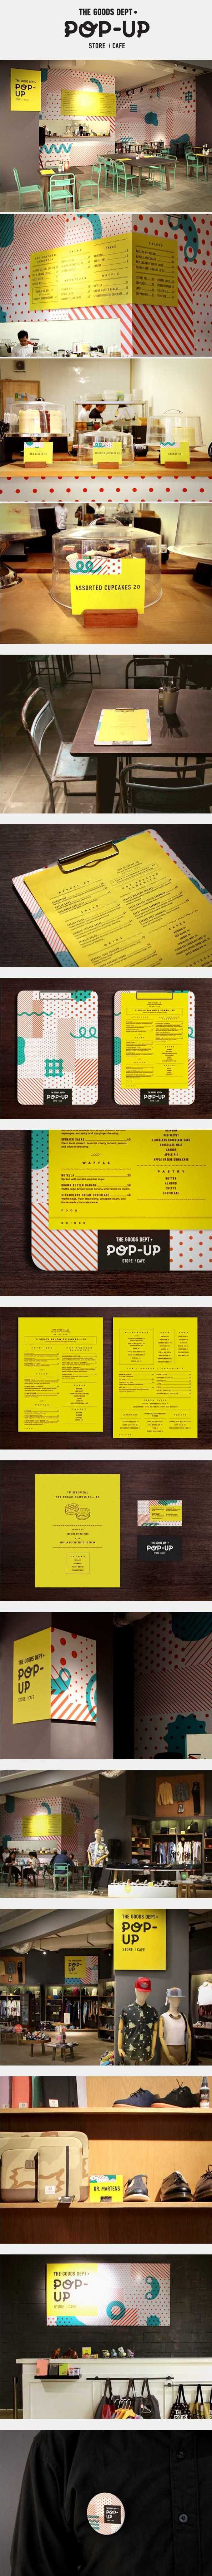 The Goods Dept rolled out a pop-up store/cafe in preparation for its third…